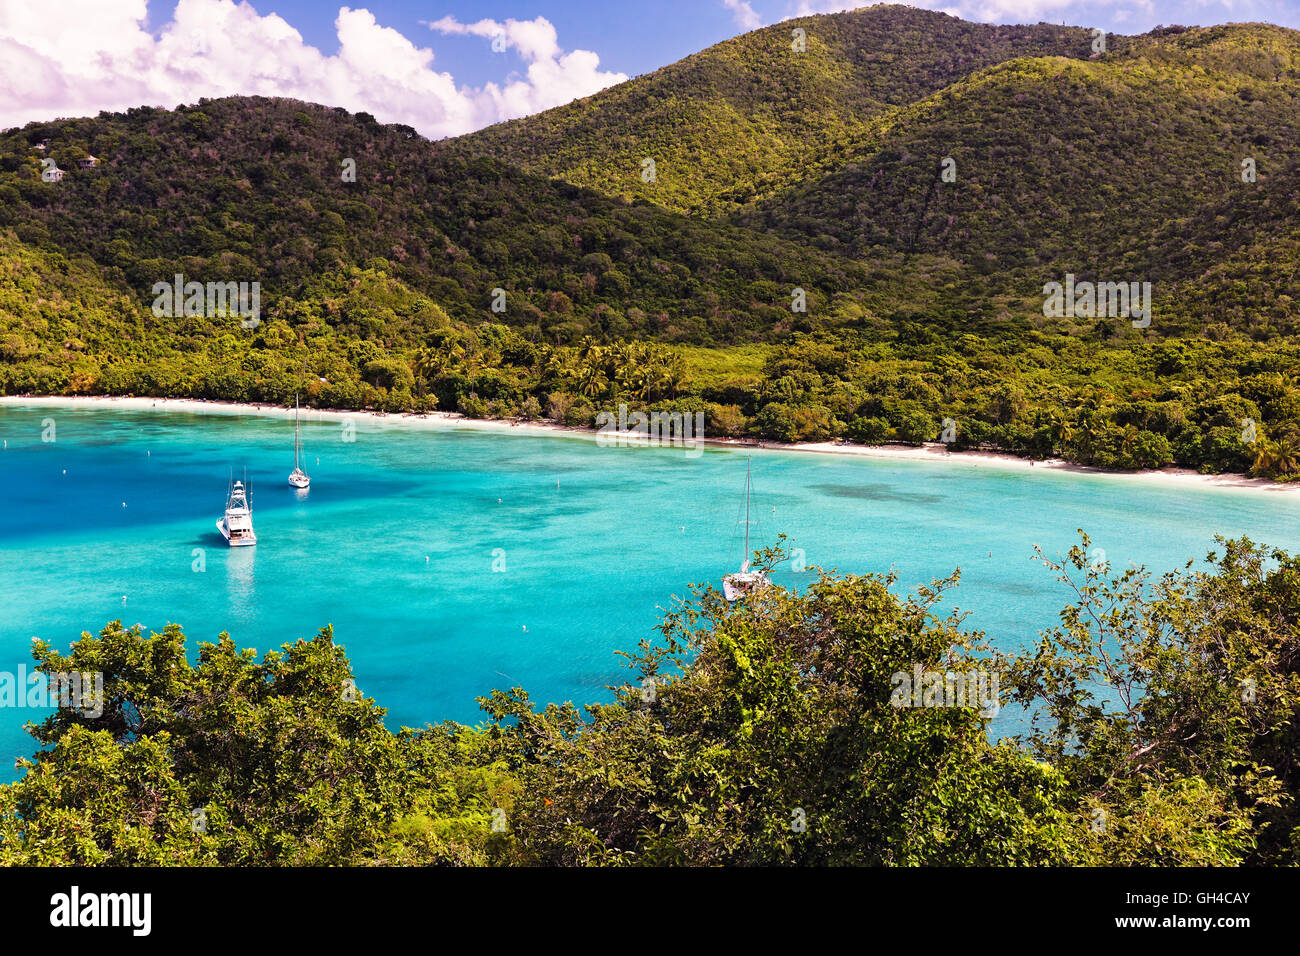 High Angle View of a Tropical Beach with Turqouise Waters, Maho Bay, Virgin Island National Park, St John, USVI Stock Photo